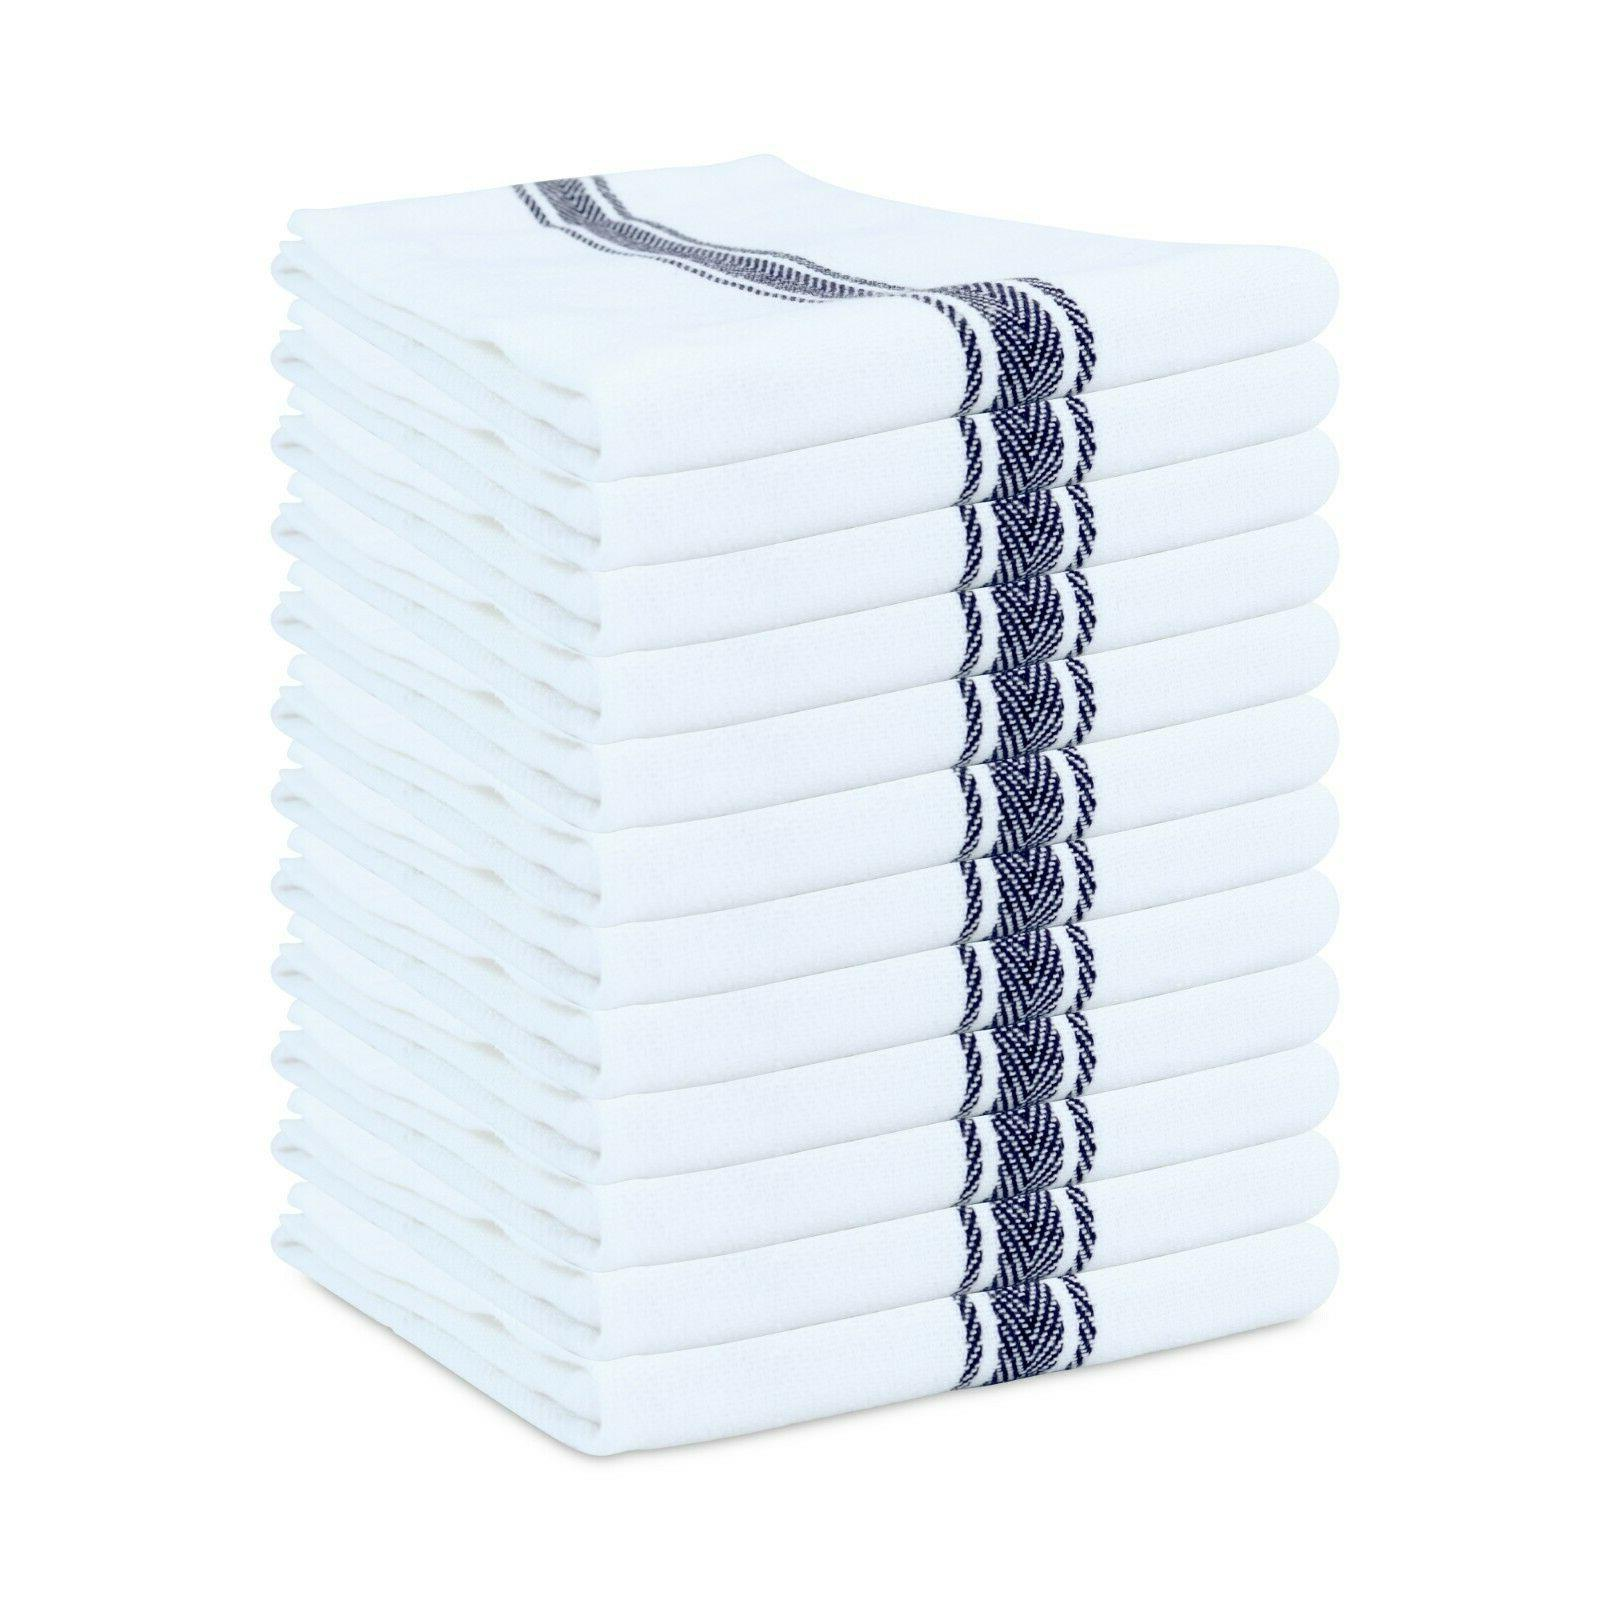 12 pack of striped kitchen tea towels